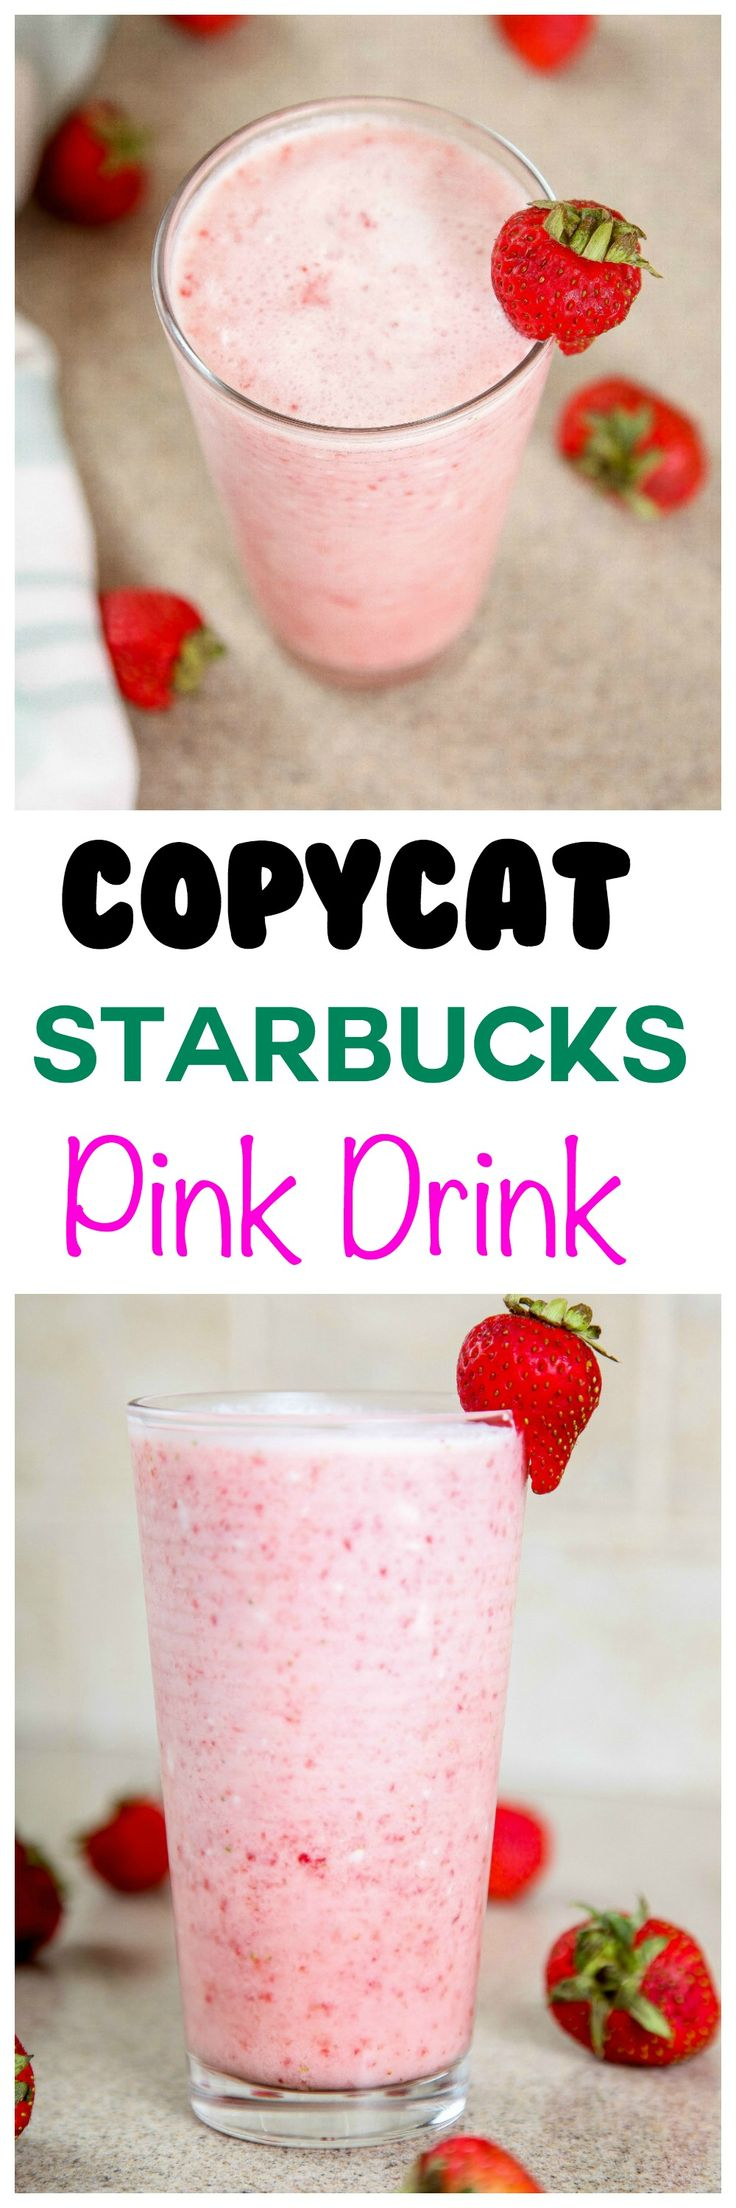 Starbucks Pink Drink Recipe: This creamy fruity drink tastes just like a pink starburst! The cutest and most refreshing summer drink ever!